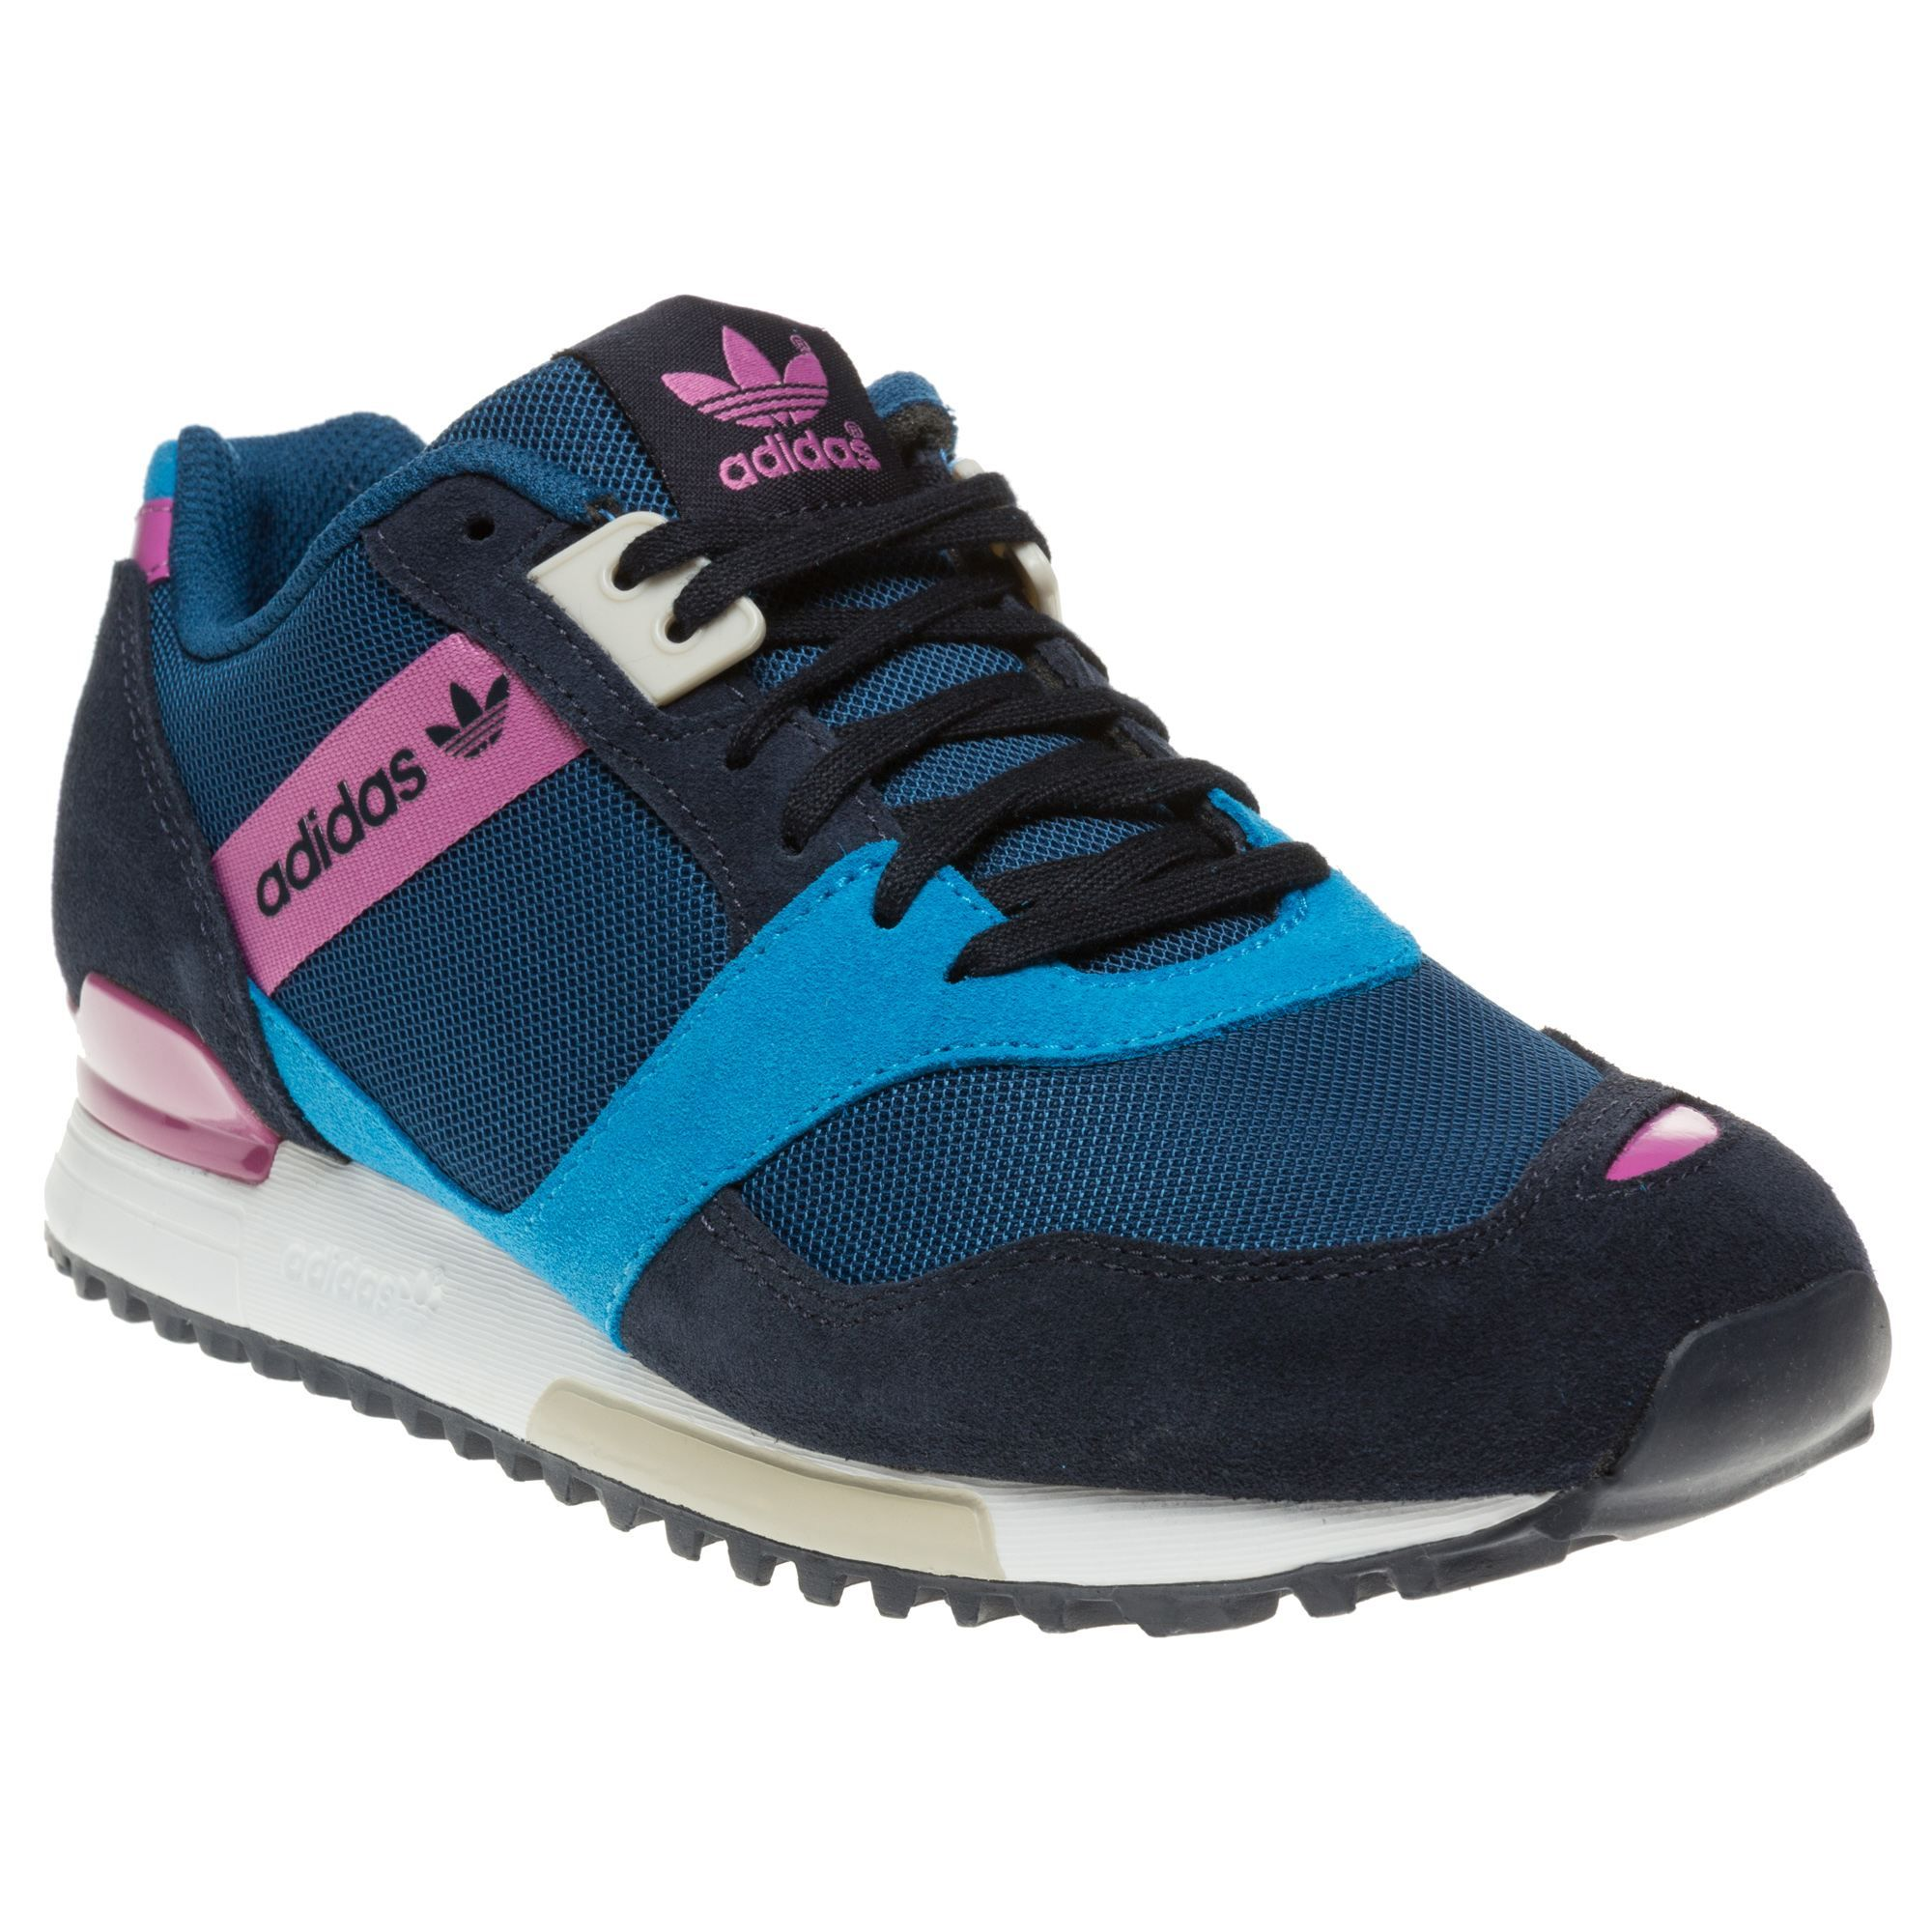 5a162bc74188d ... coupon code for adidas zx 700 trainers women soletrader 8ee7d 30859 ...